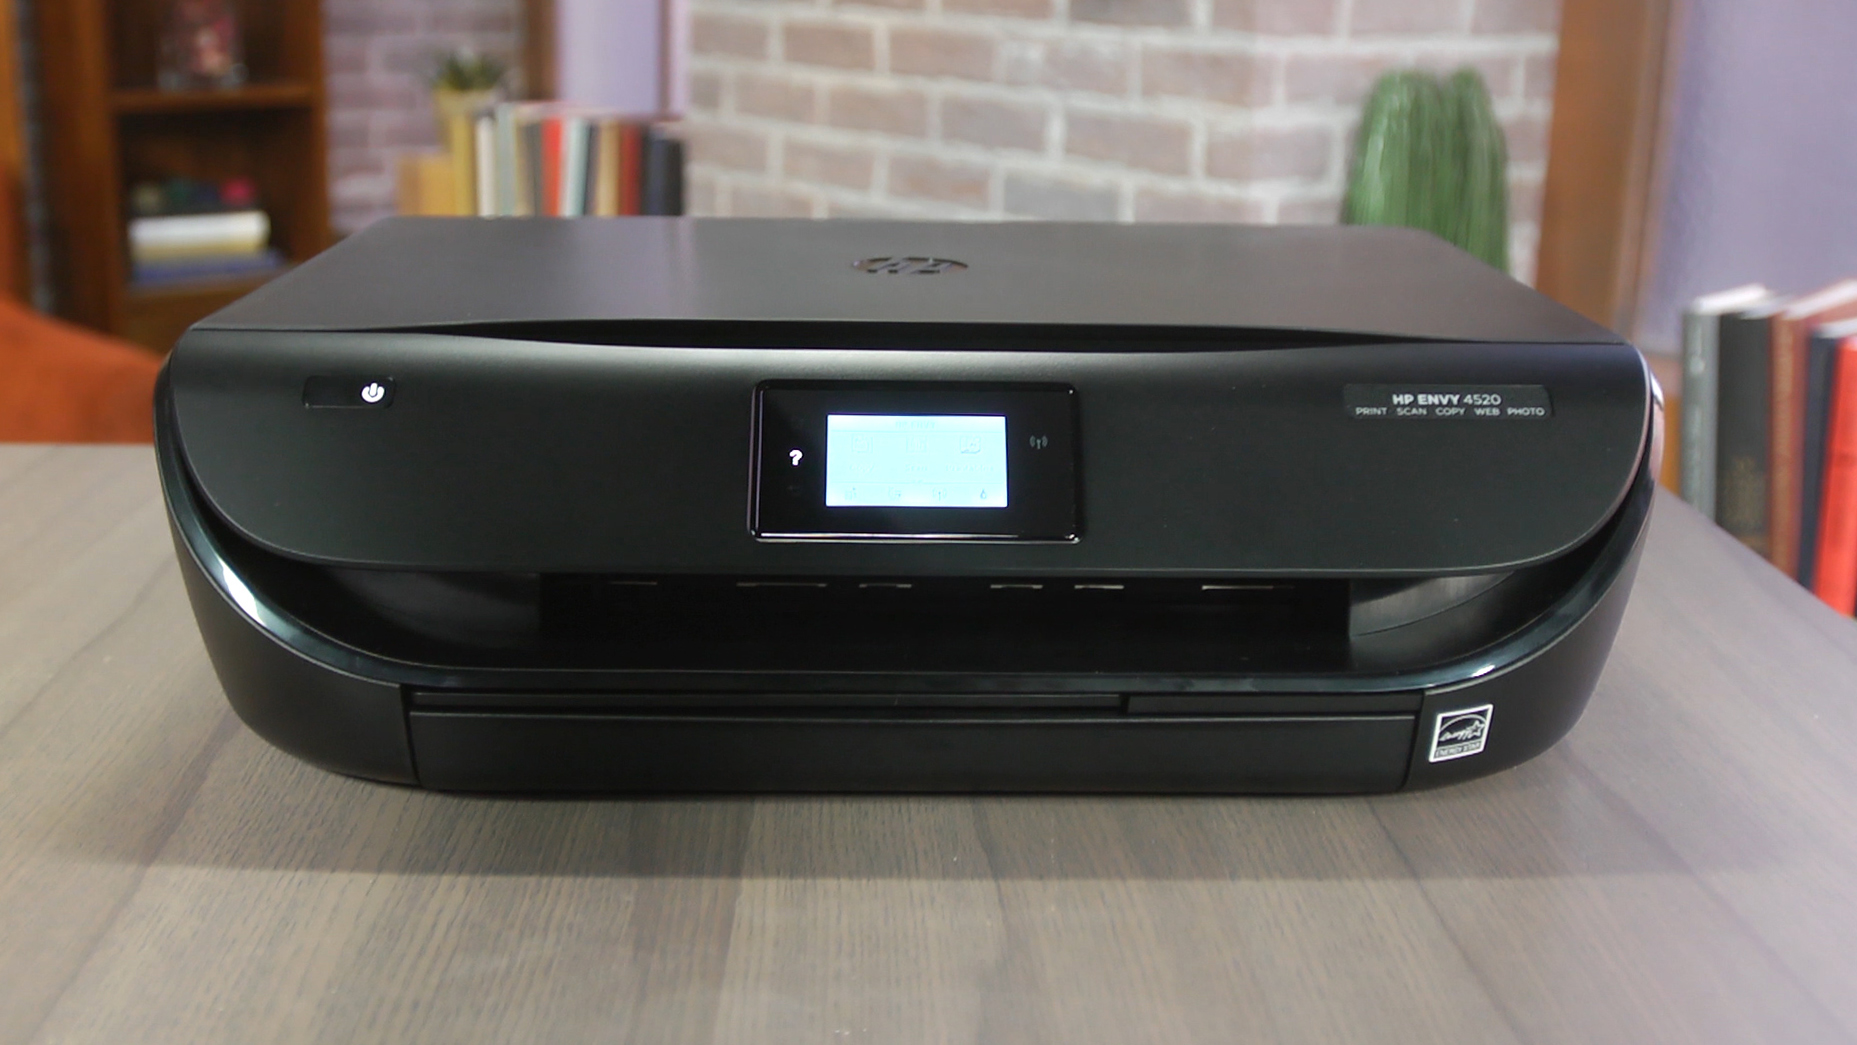 Video: A capable multifunctional printer for under $150